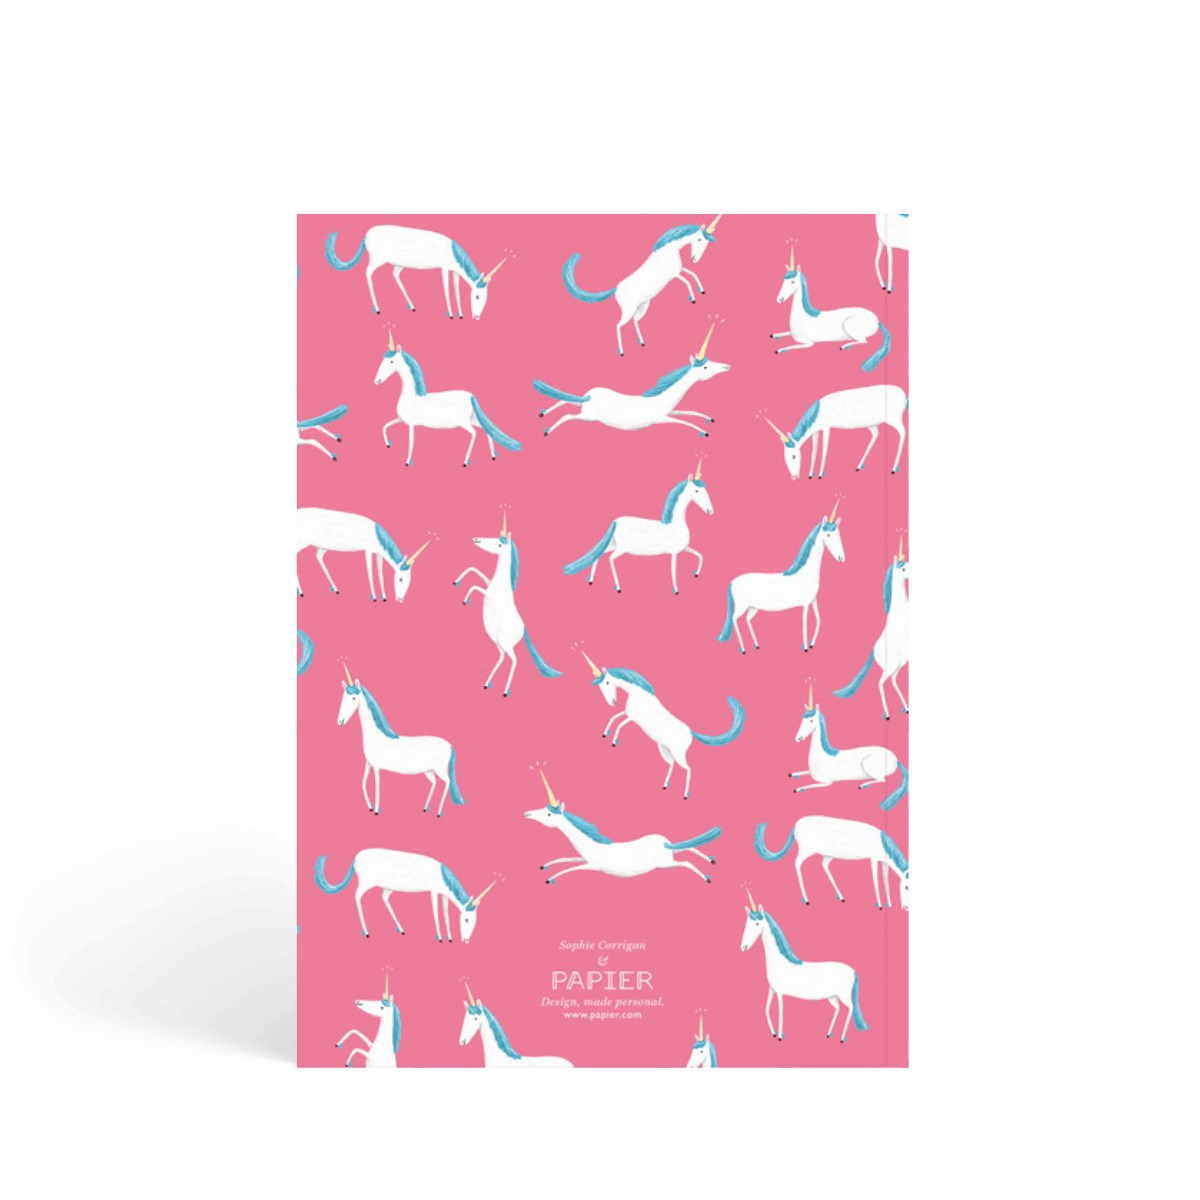 Https%3a%2f%2fwww.papier.com%2fproduct image%2f42062%2f5%2fpink unicorn 10729 back 1532363833.png?ixlib=rb 1.1